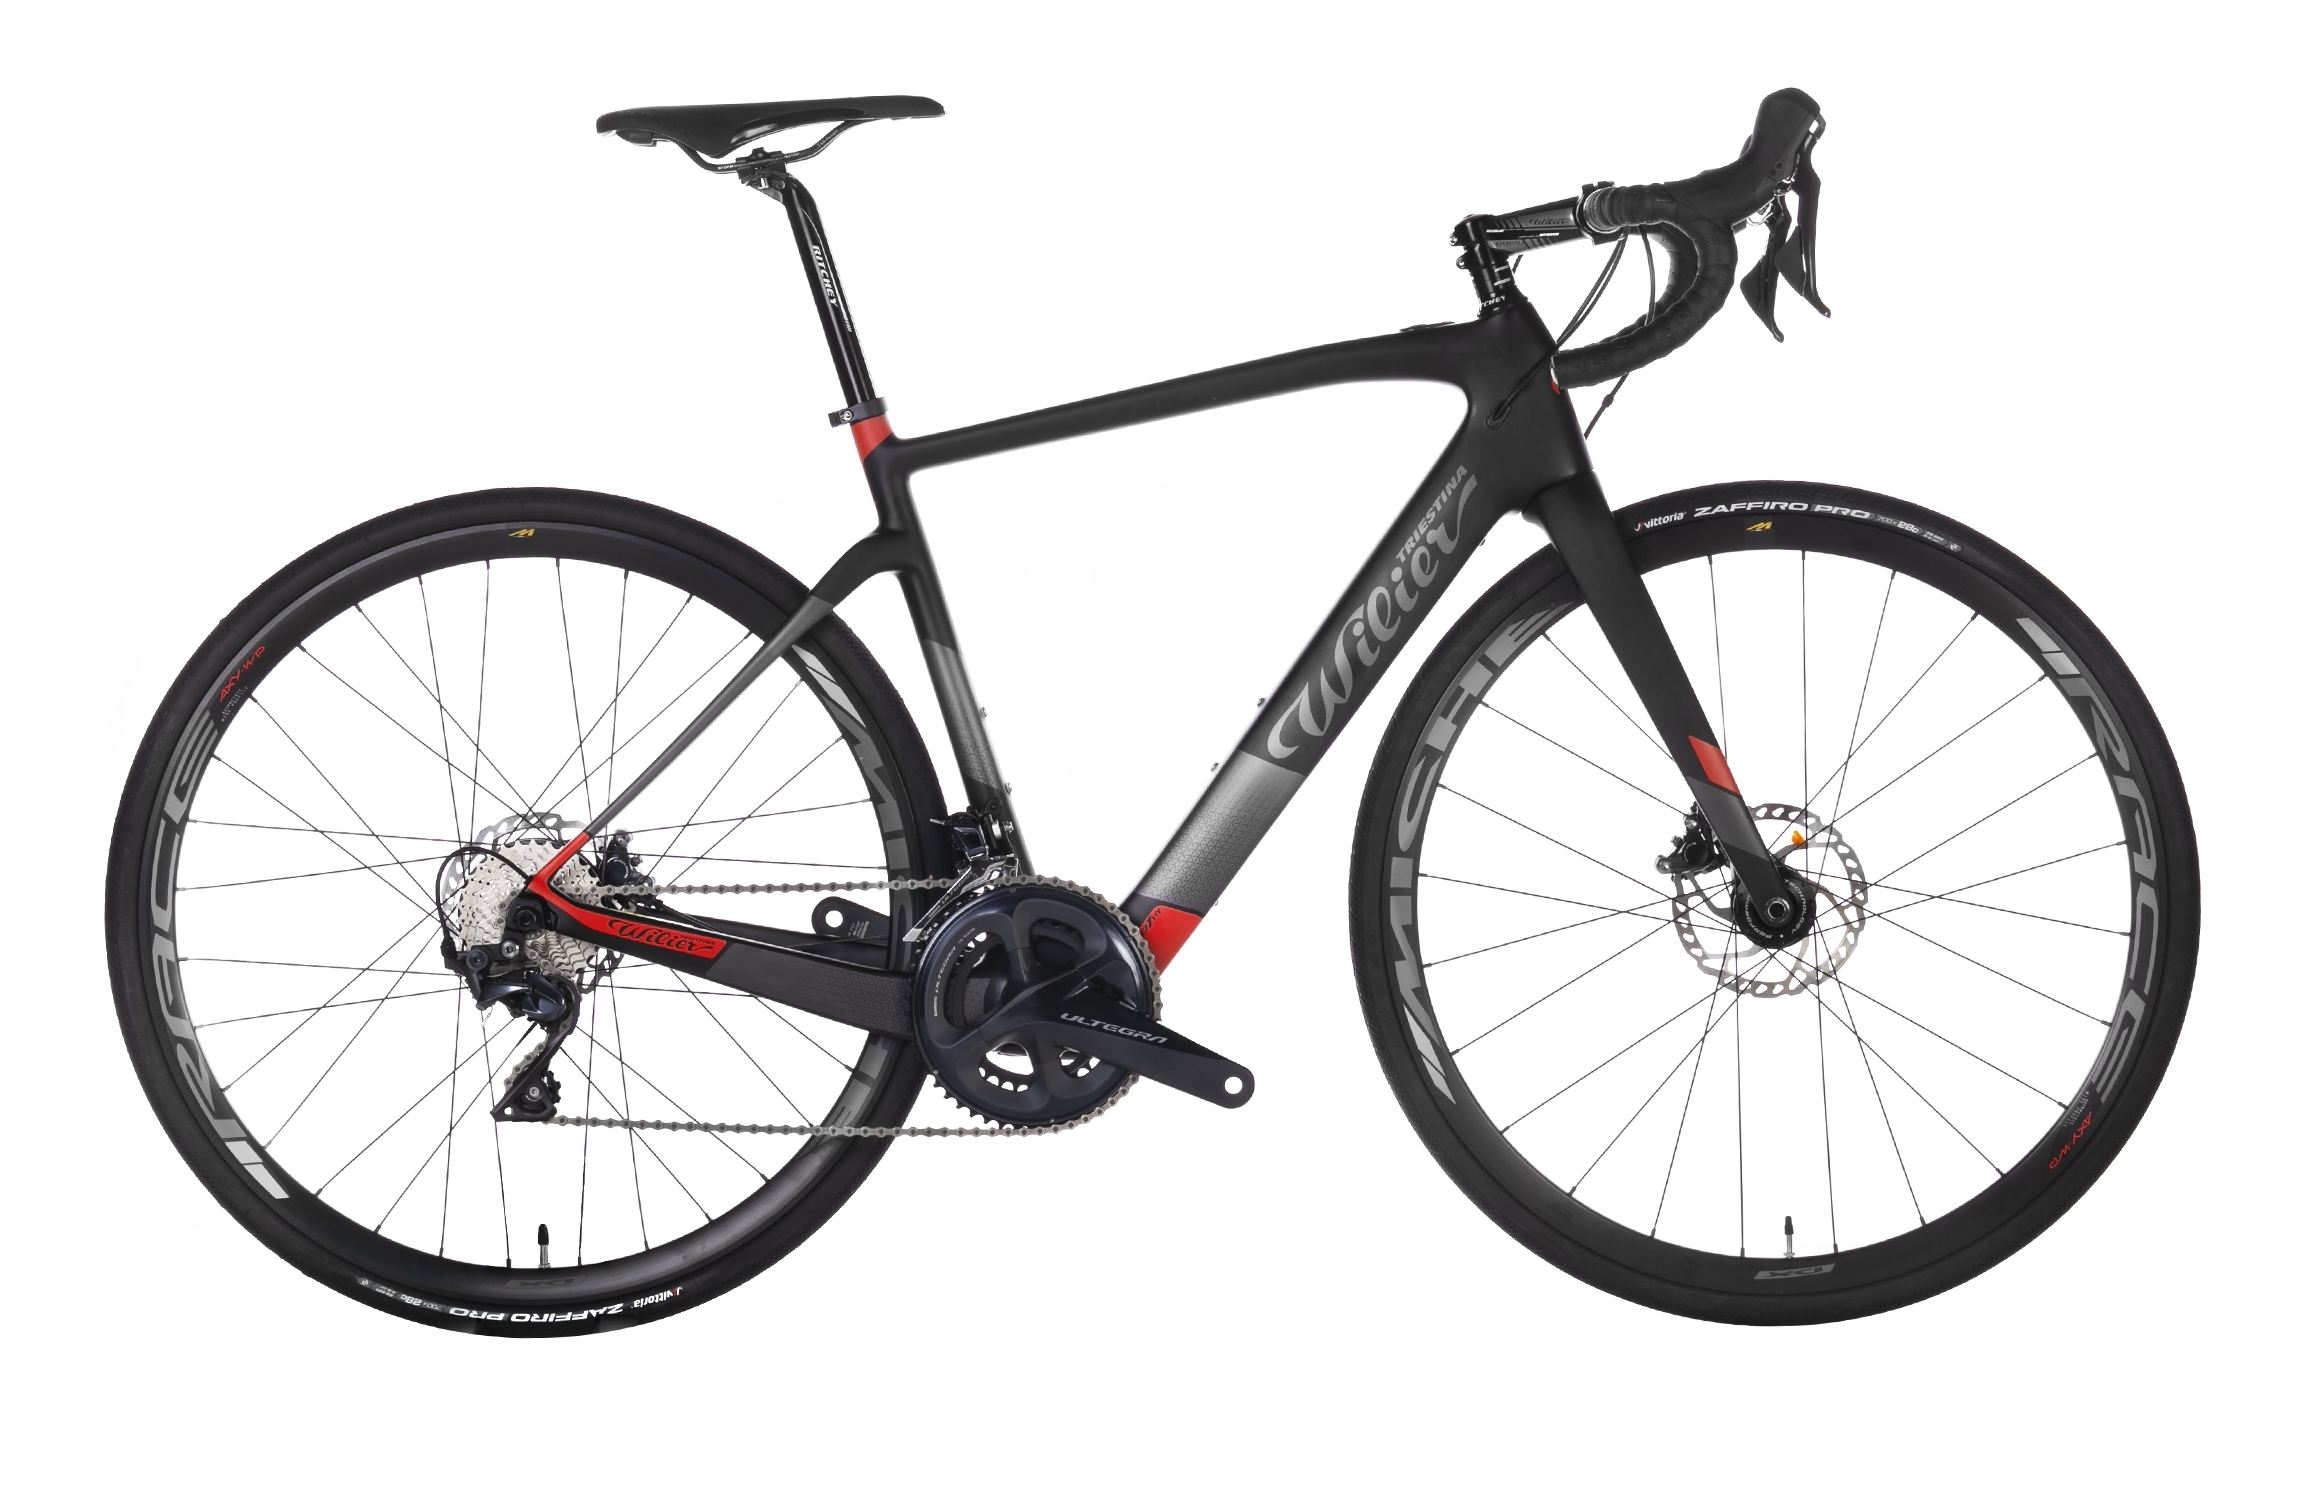 kolo CENTO1HY + ULTEGRA R8020 + MICHE black red S